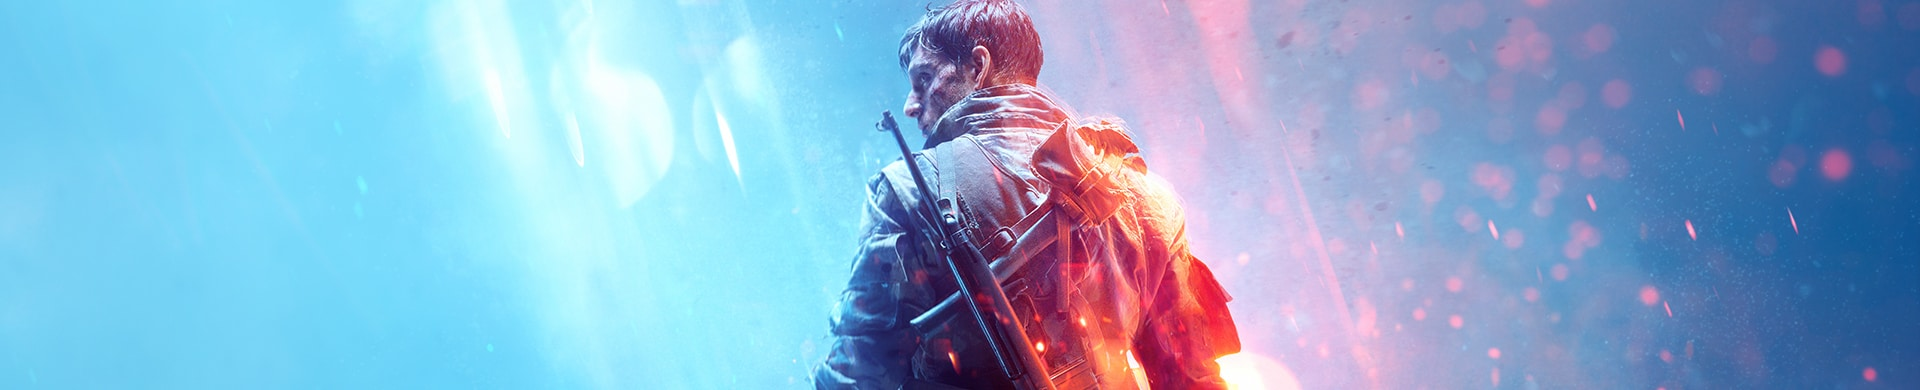 BATTLEFIELD™ V OFFICIALLY LAUNCHES – VIRTUOS ART TEAM'S WORK FEATURED